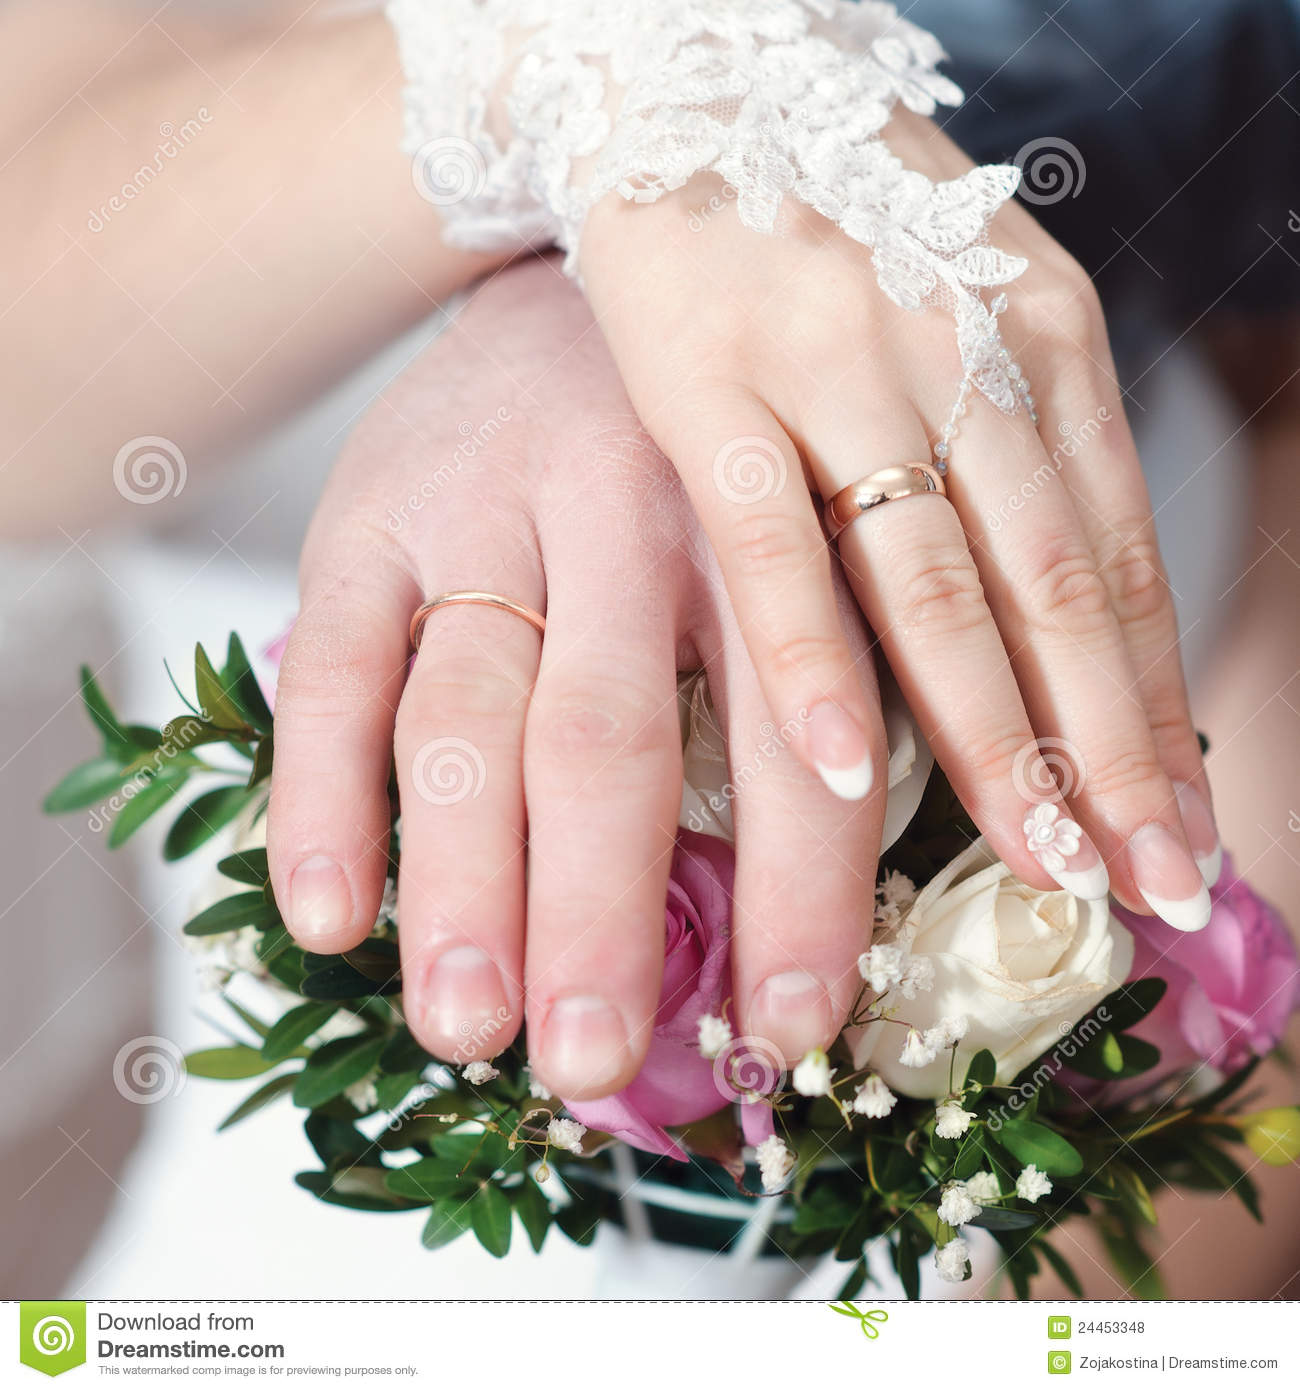 Hands Wearing Wedding Rings Stock Photo - Image of down, fashion ...